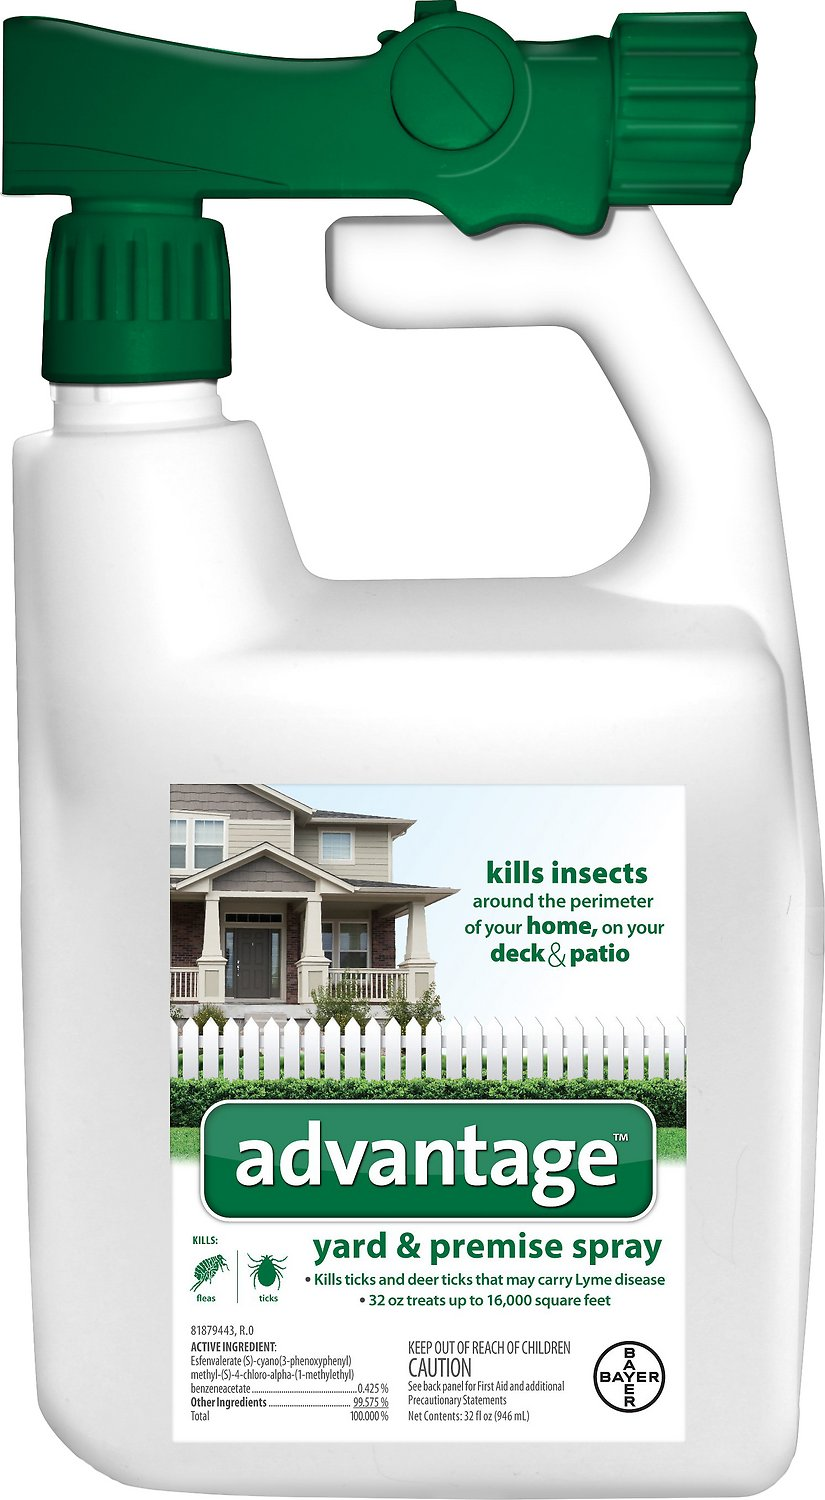 Bayer Advantage Yard & Premise Spray, 32-oz hose-end spray